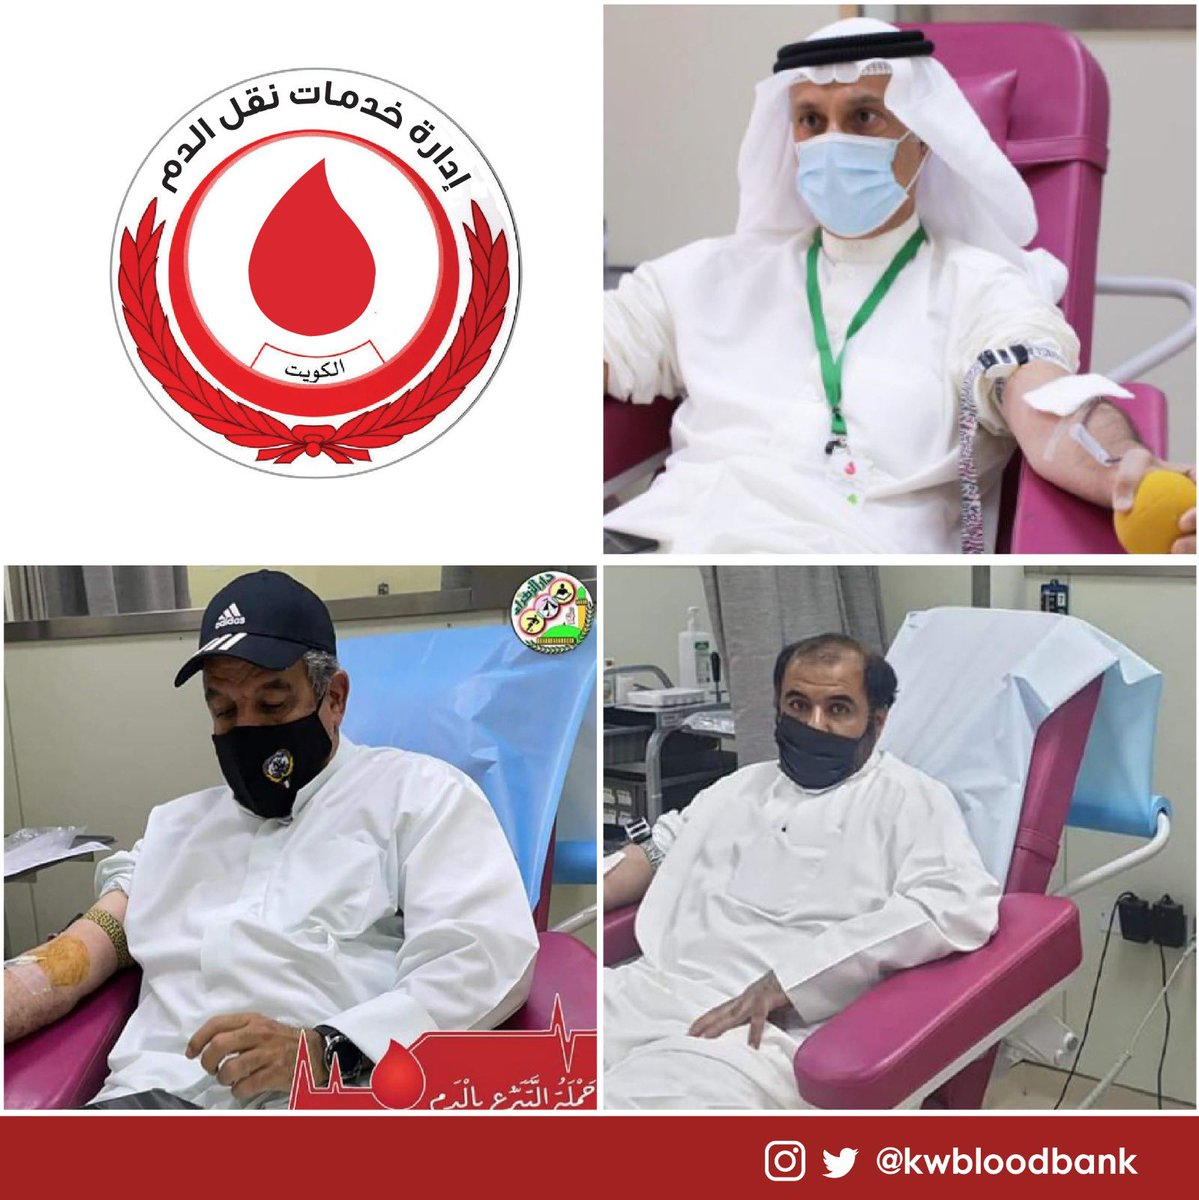 The @Dawoodi_Bohras of Kuwait are proud to have responded to the cause of blood donation by @KwBloodBank.  #WorldBloodDonorDay   #اليوم_العالمي_للمتبرعين_بالدم